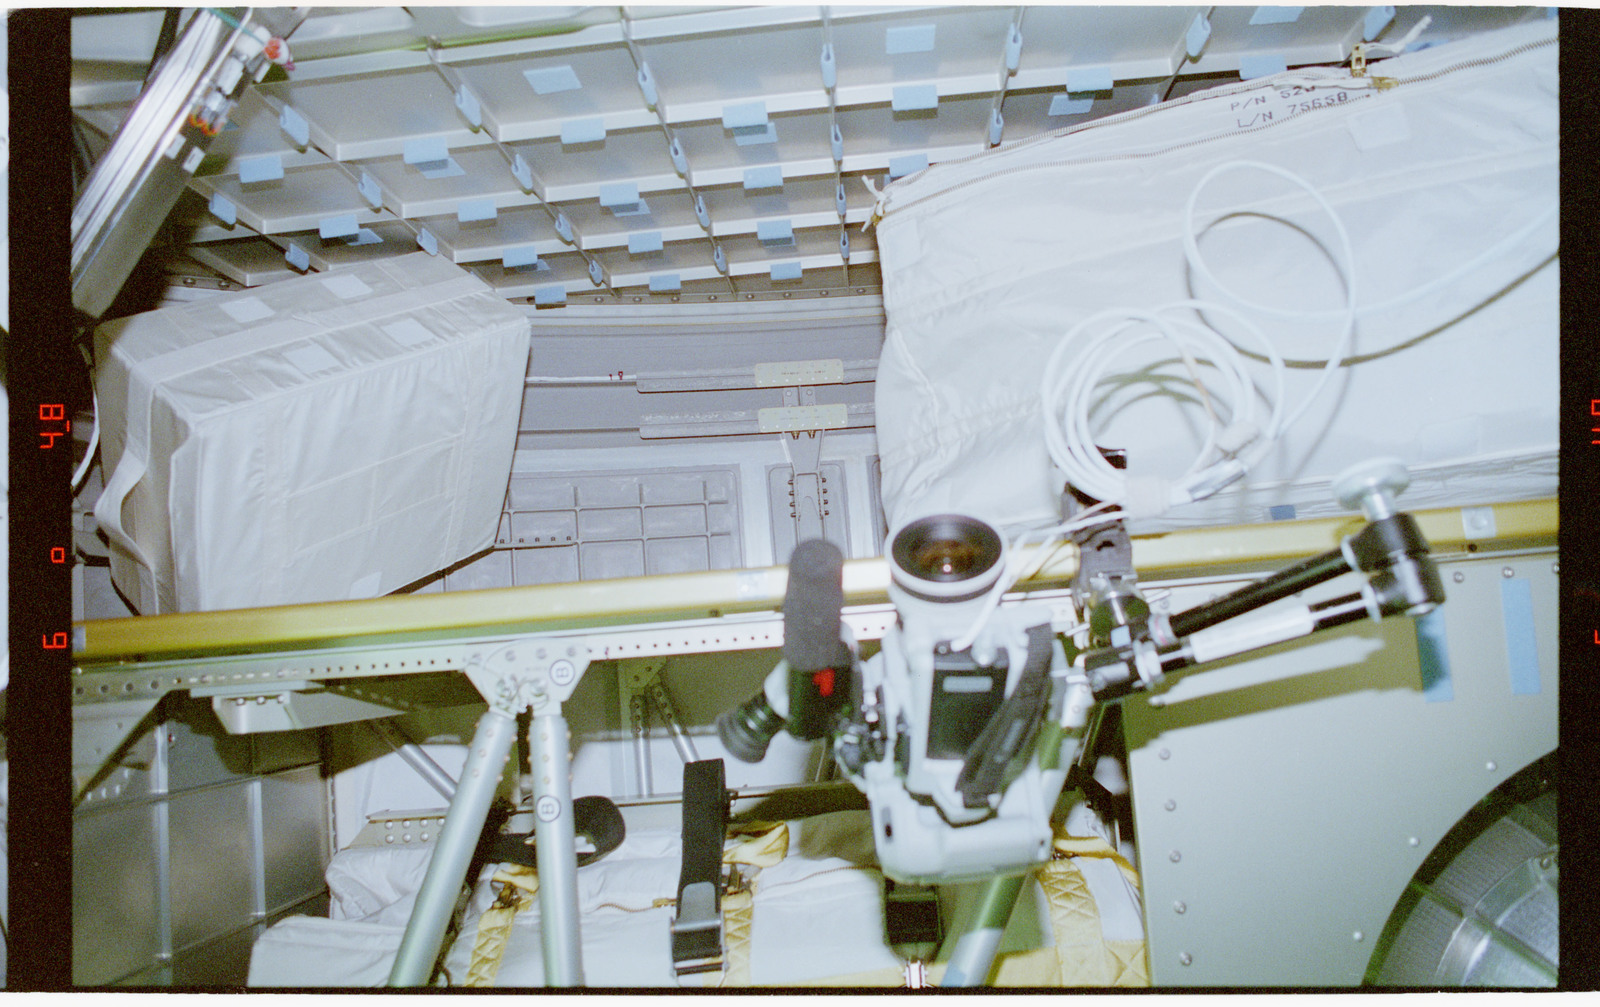 STS079-302-036 - STS-079 - Stowage in the Spacehab module